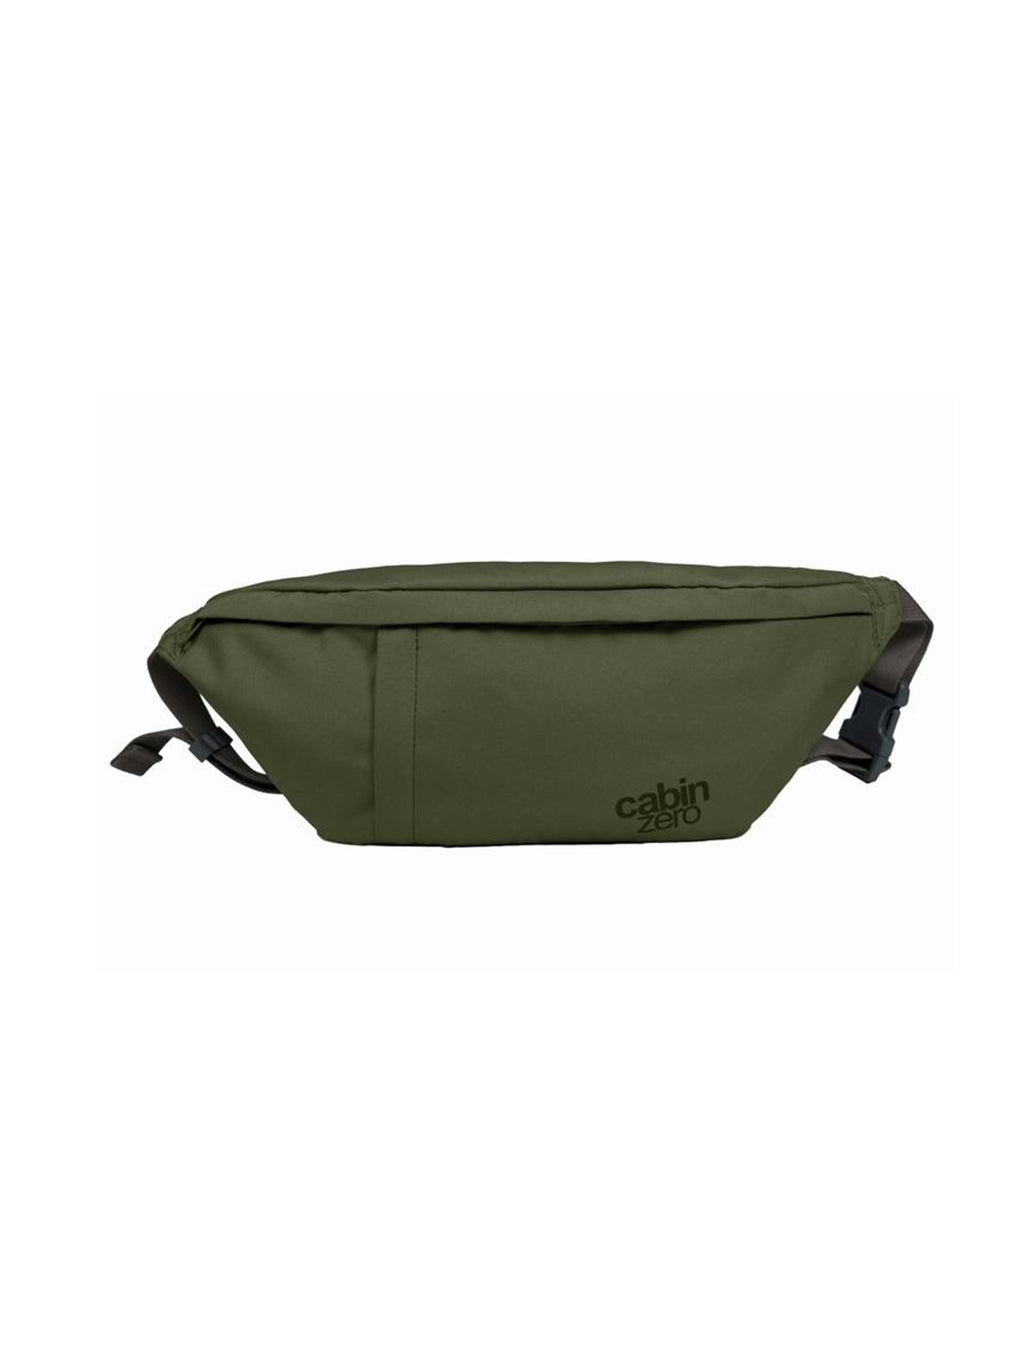 Cabinzero Hip Pack 2L in Georgian Khaki Color